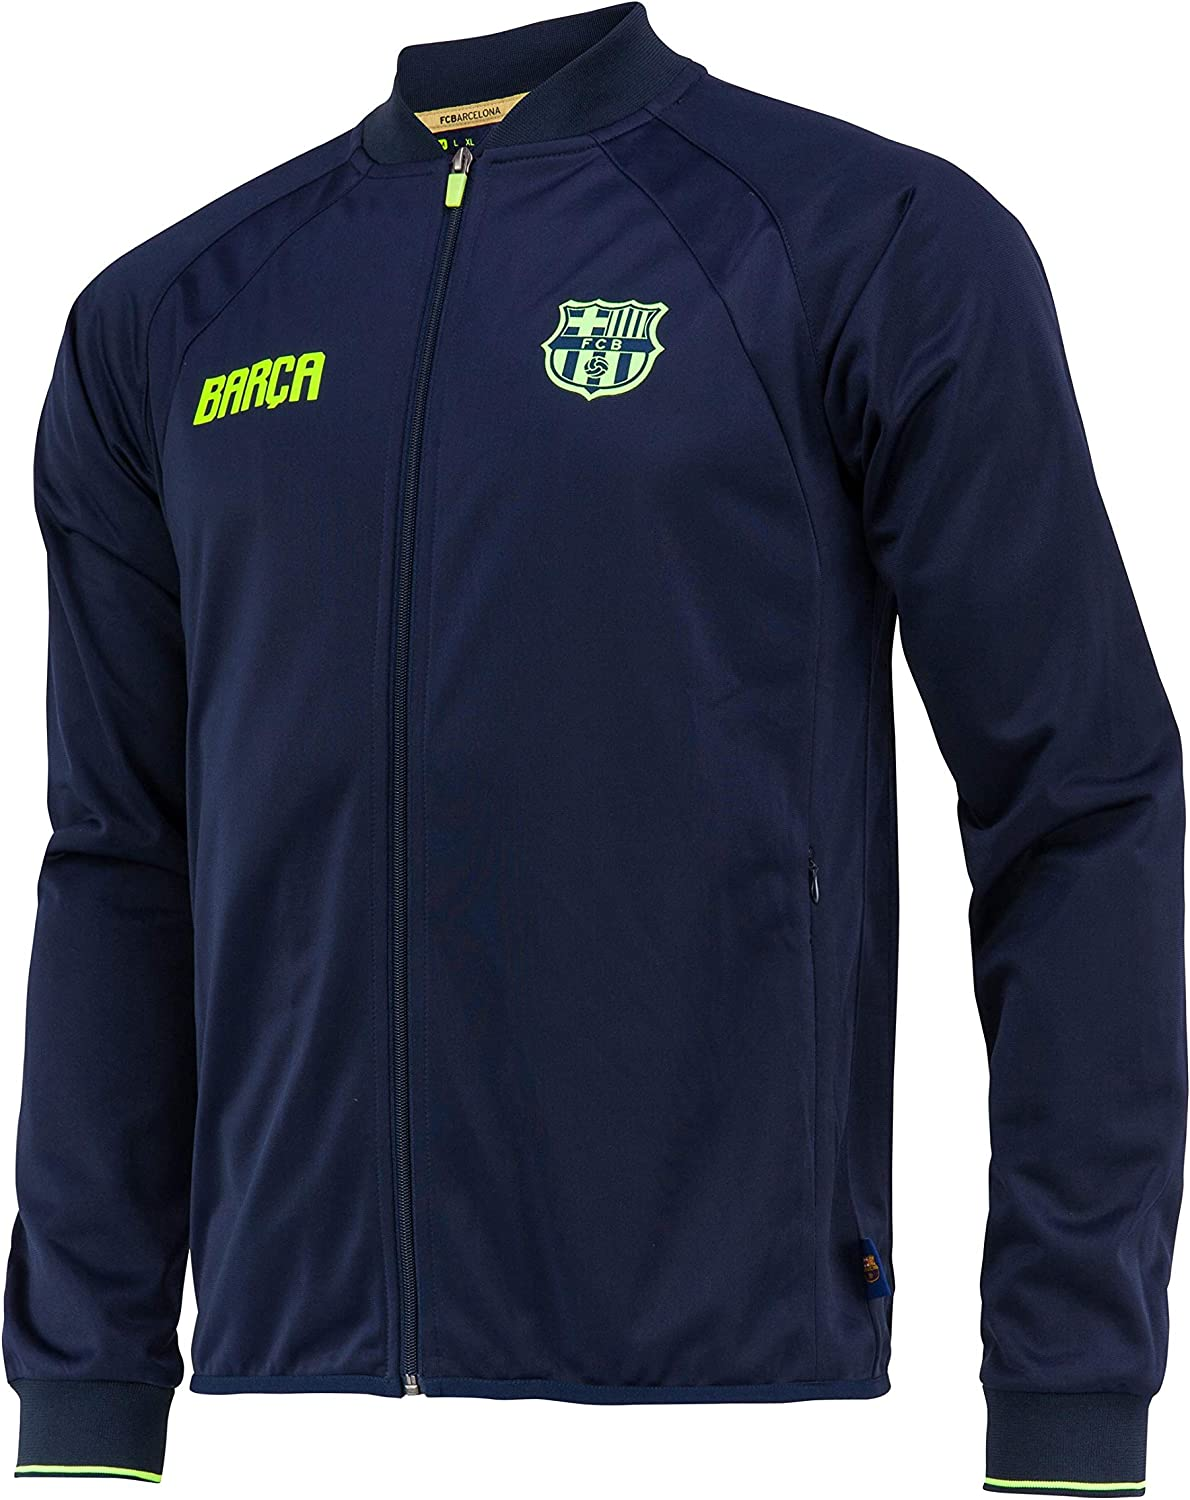 FC Barcelona Official Collection Adult Size Jacket